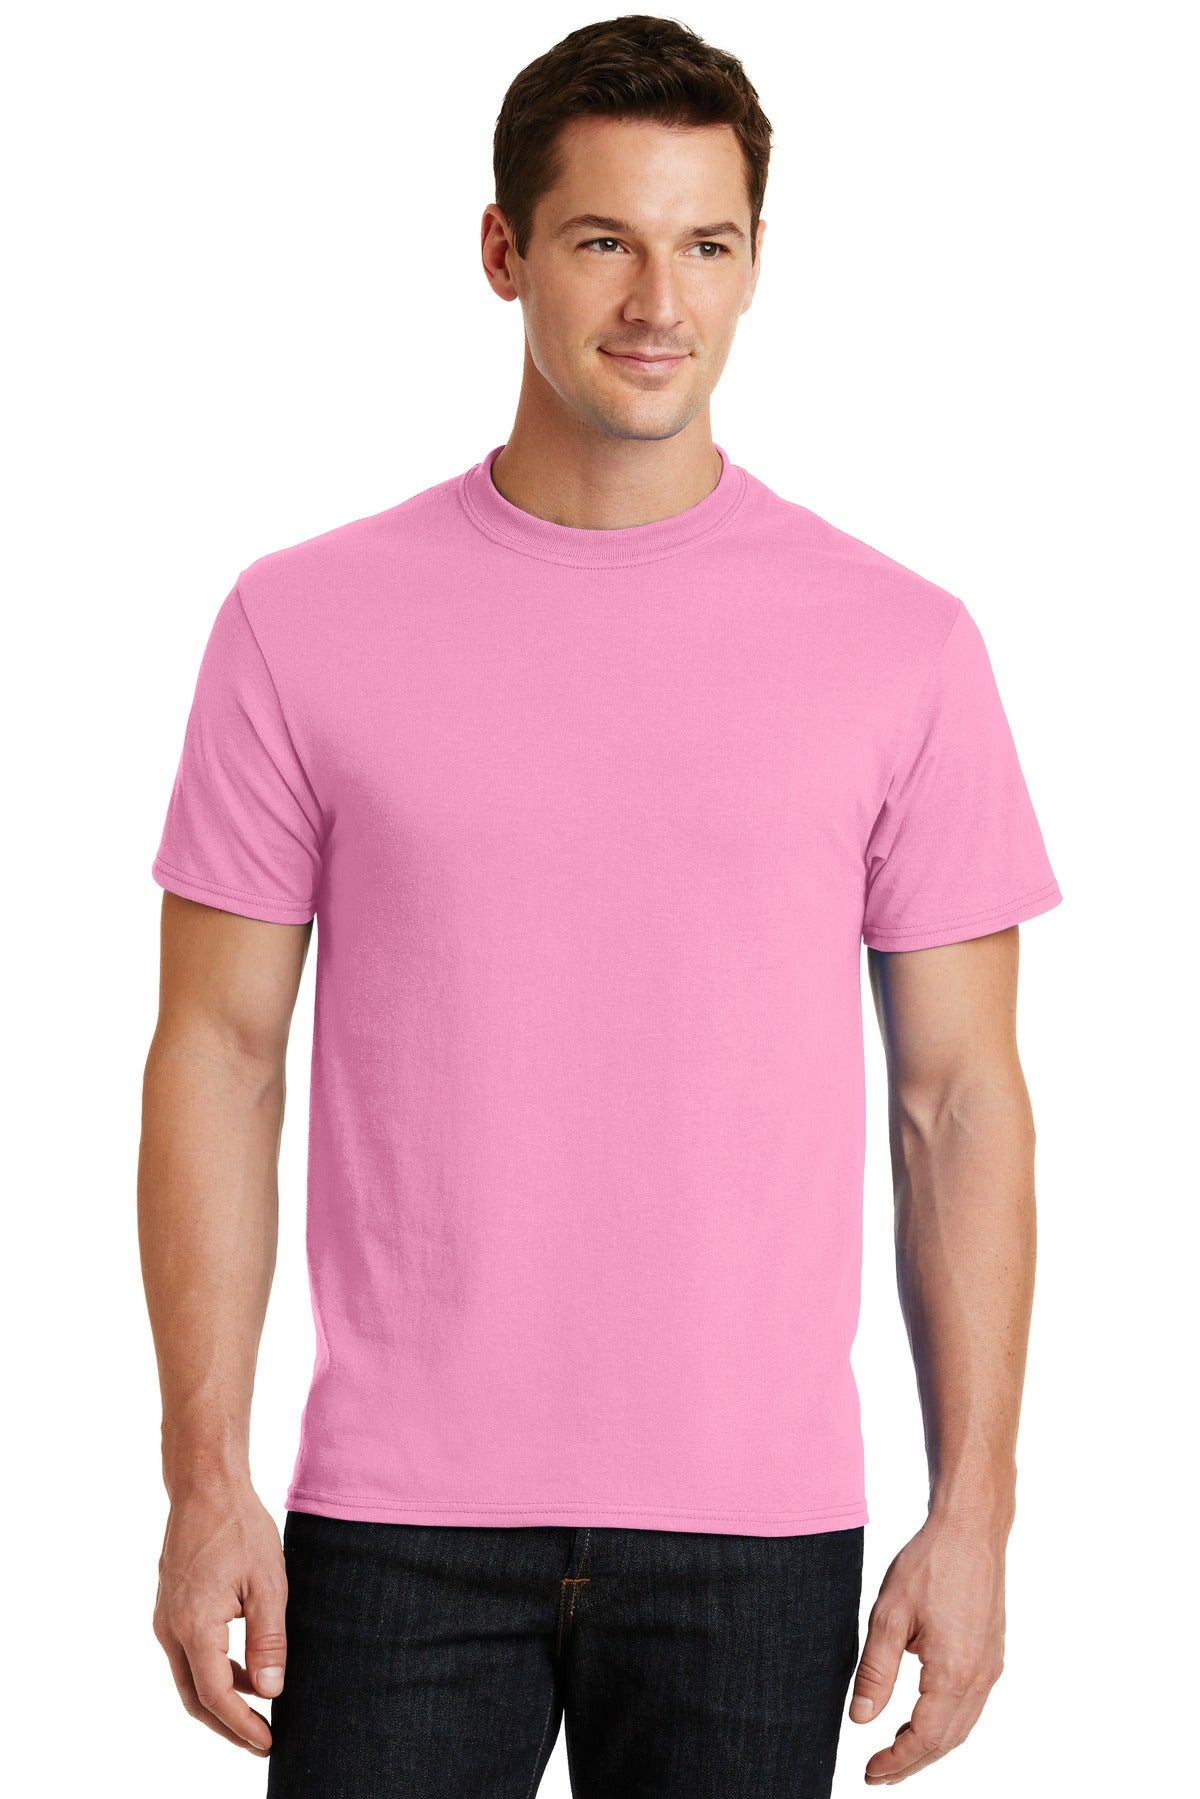 Candy Pink Port & Company - Core Blend T-Shirt